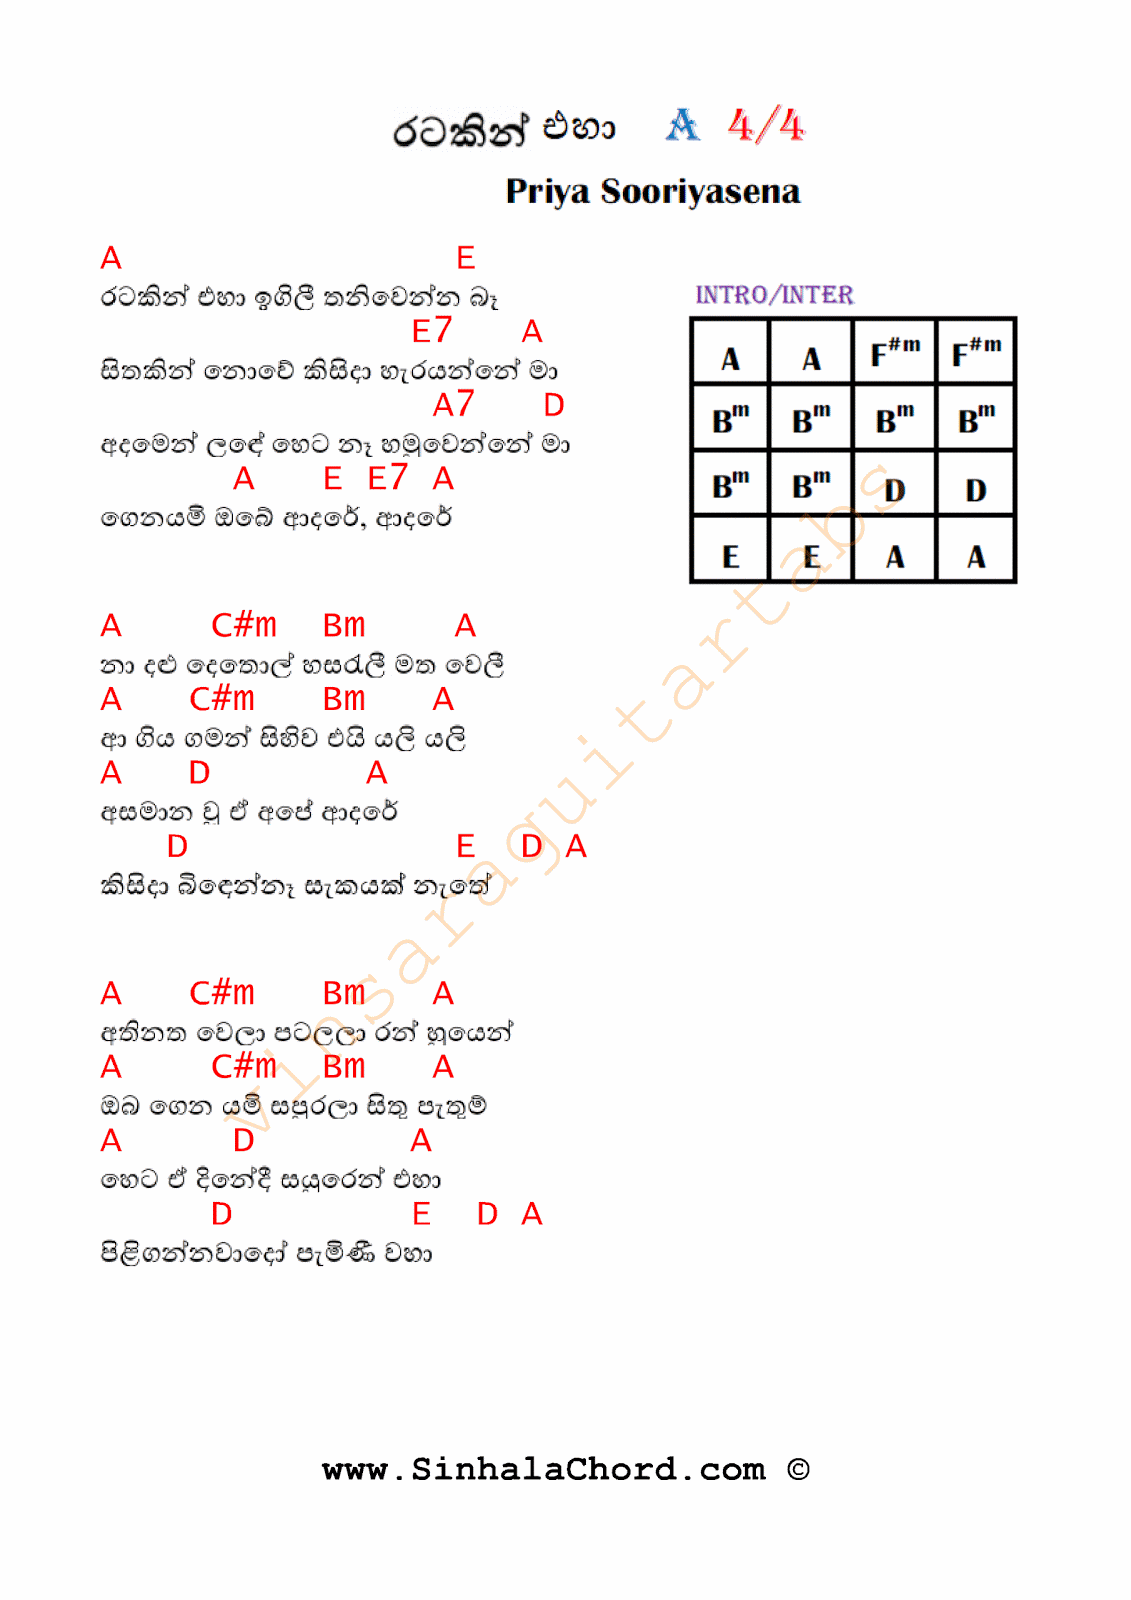 Ratakin Eha Guitar Chords : Sinhala Guitar Chords: Sinhala Songs Chords:Guitar Tabs: Sinhala Midi ...